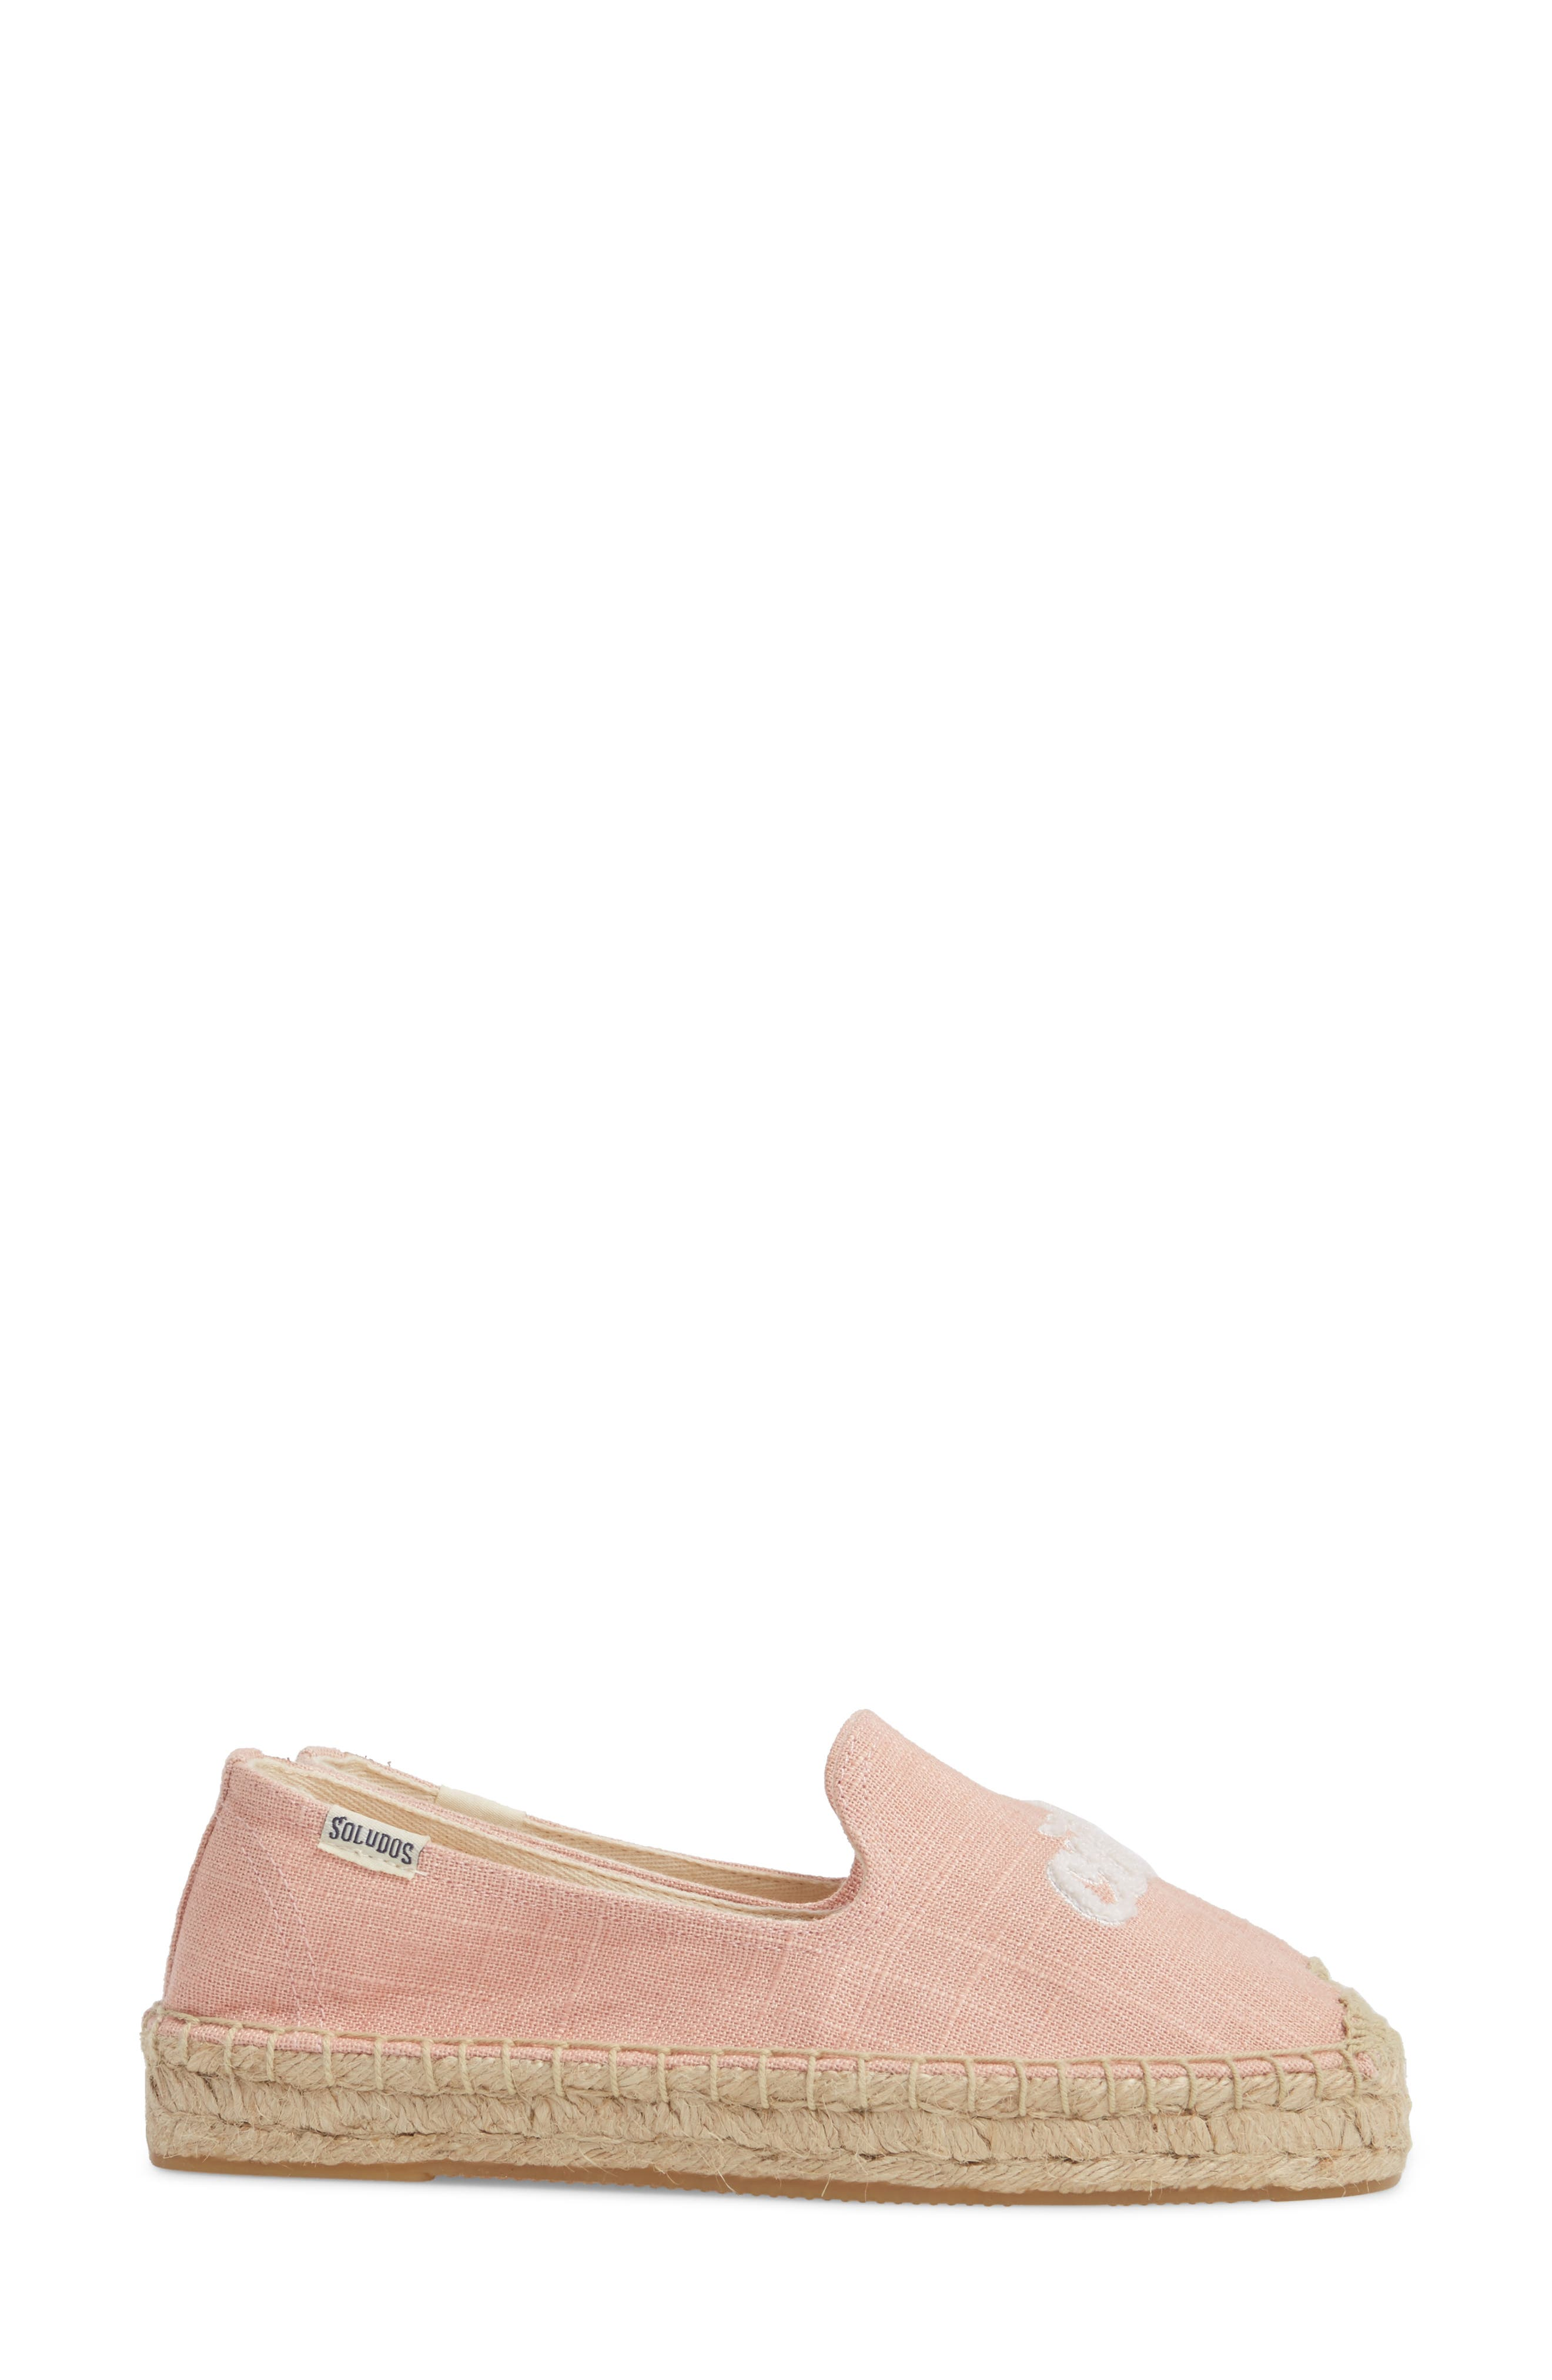 SOLUDOS, Ciao Bella Espadrille Flat, Alternate thumbnail 4, color, DUSTY ROSE FABRIC